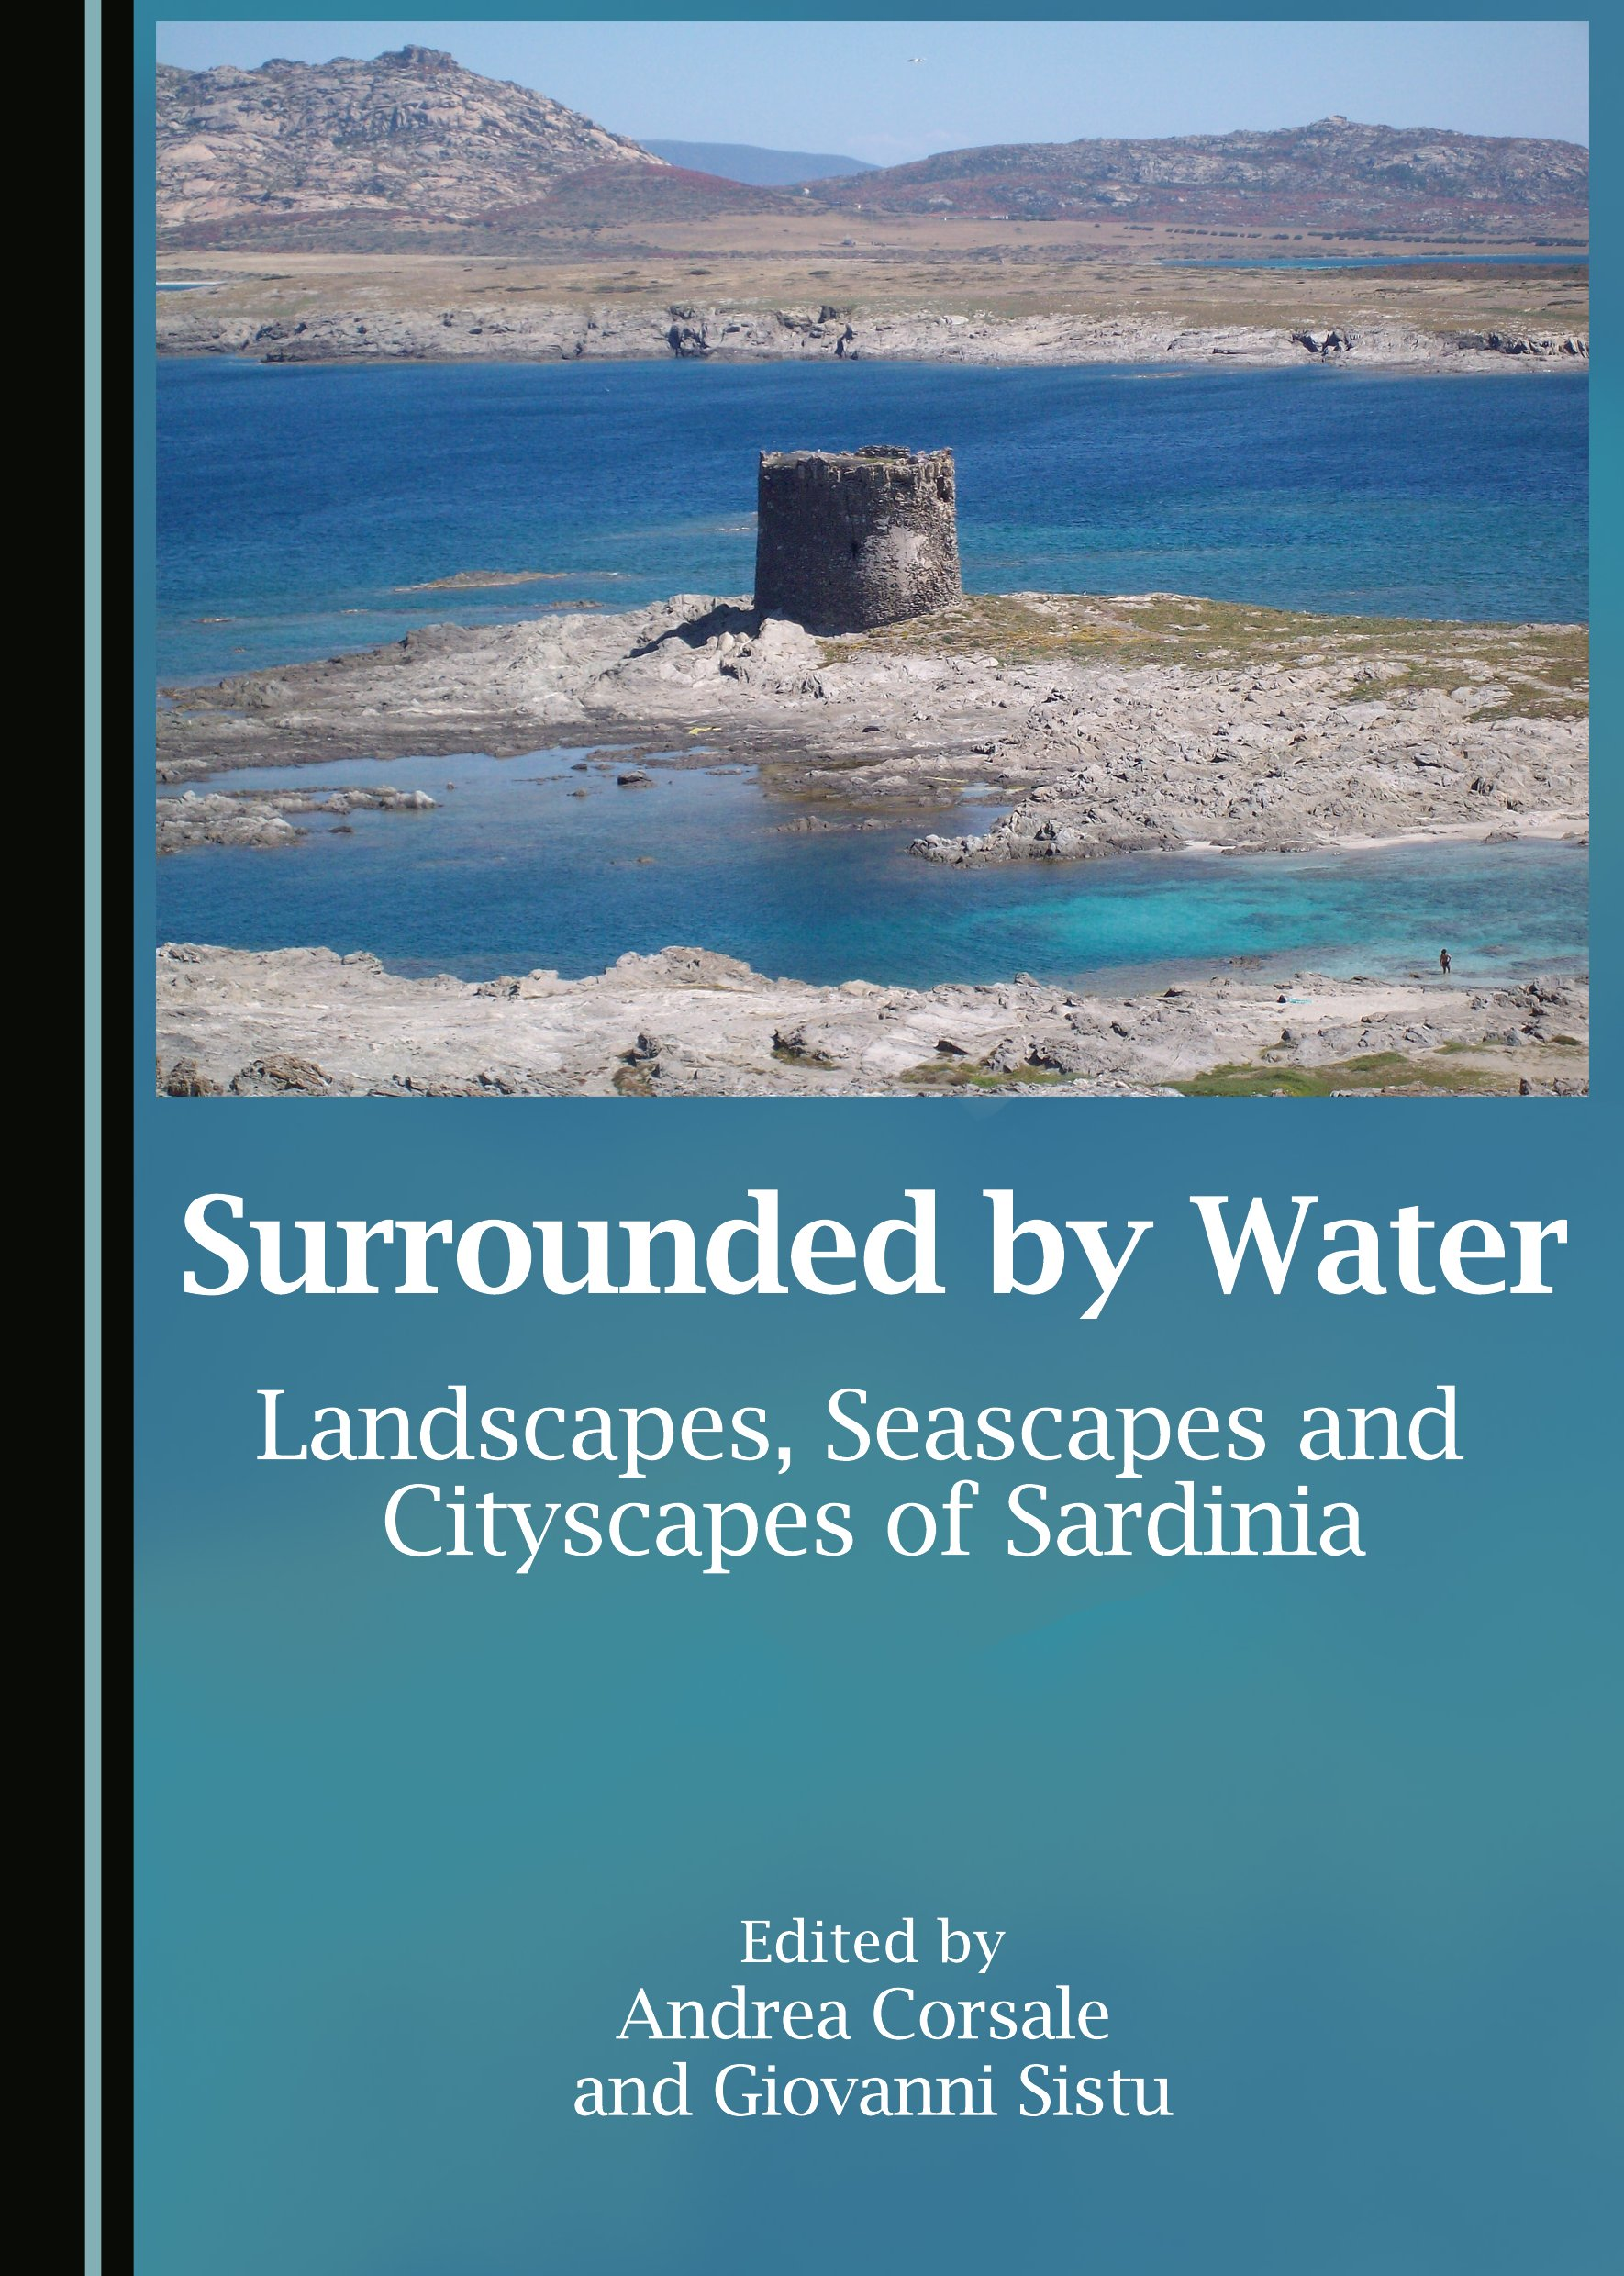 Surrounded by Water: Landscapes, Seascapes and Cityscapes of Sardinia